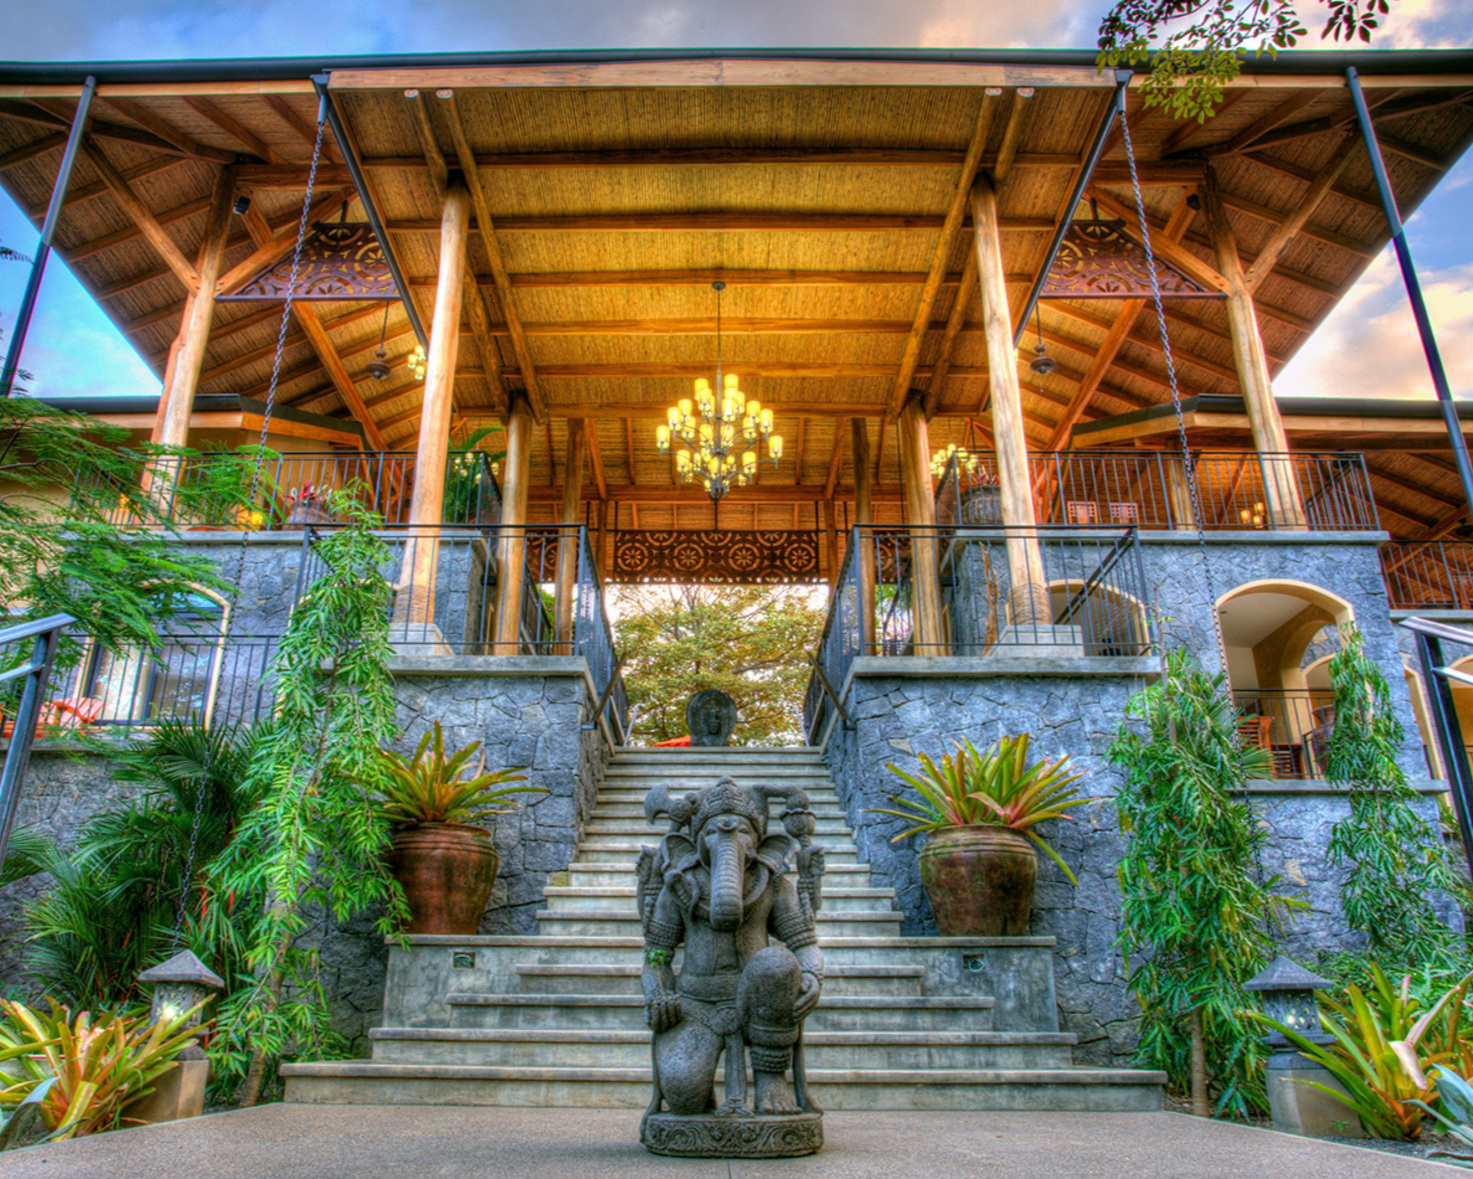 Rest, Reset & Recharge - When was the last time you did something for yourself? Truly, just for you? Here's your opportunity! Join us this summer for a week-long yoga retreat in Costa Rica!The Bodhi Tree Resort ~ July 6-13, 2019